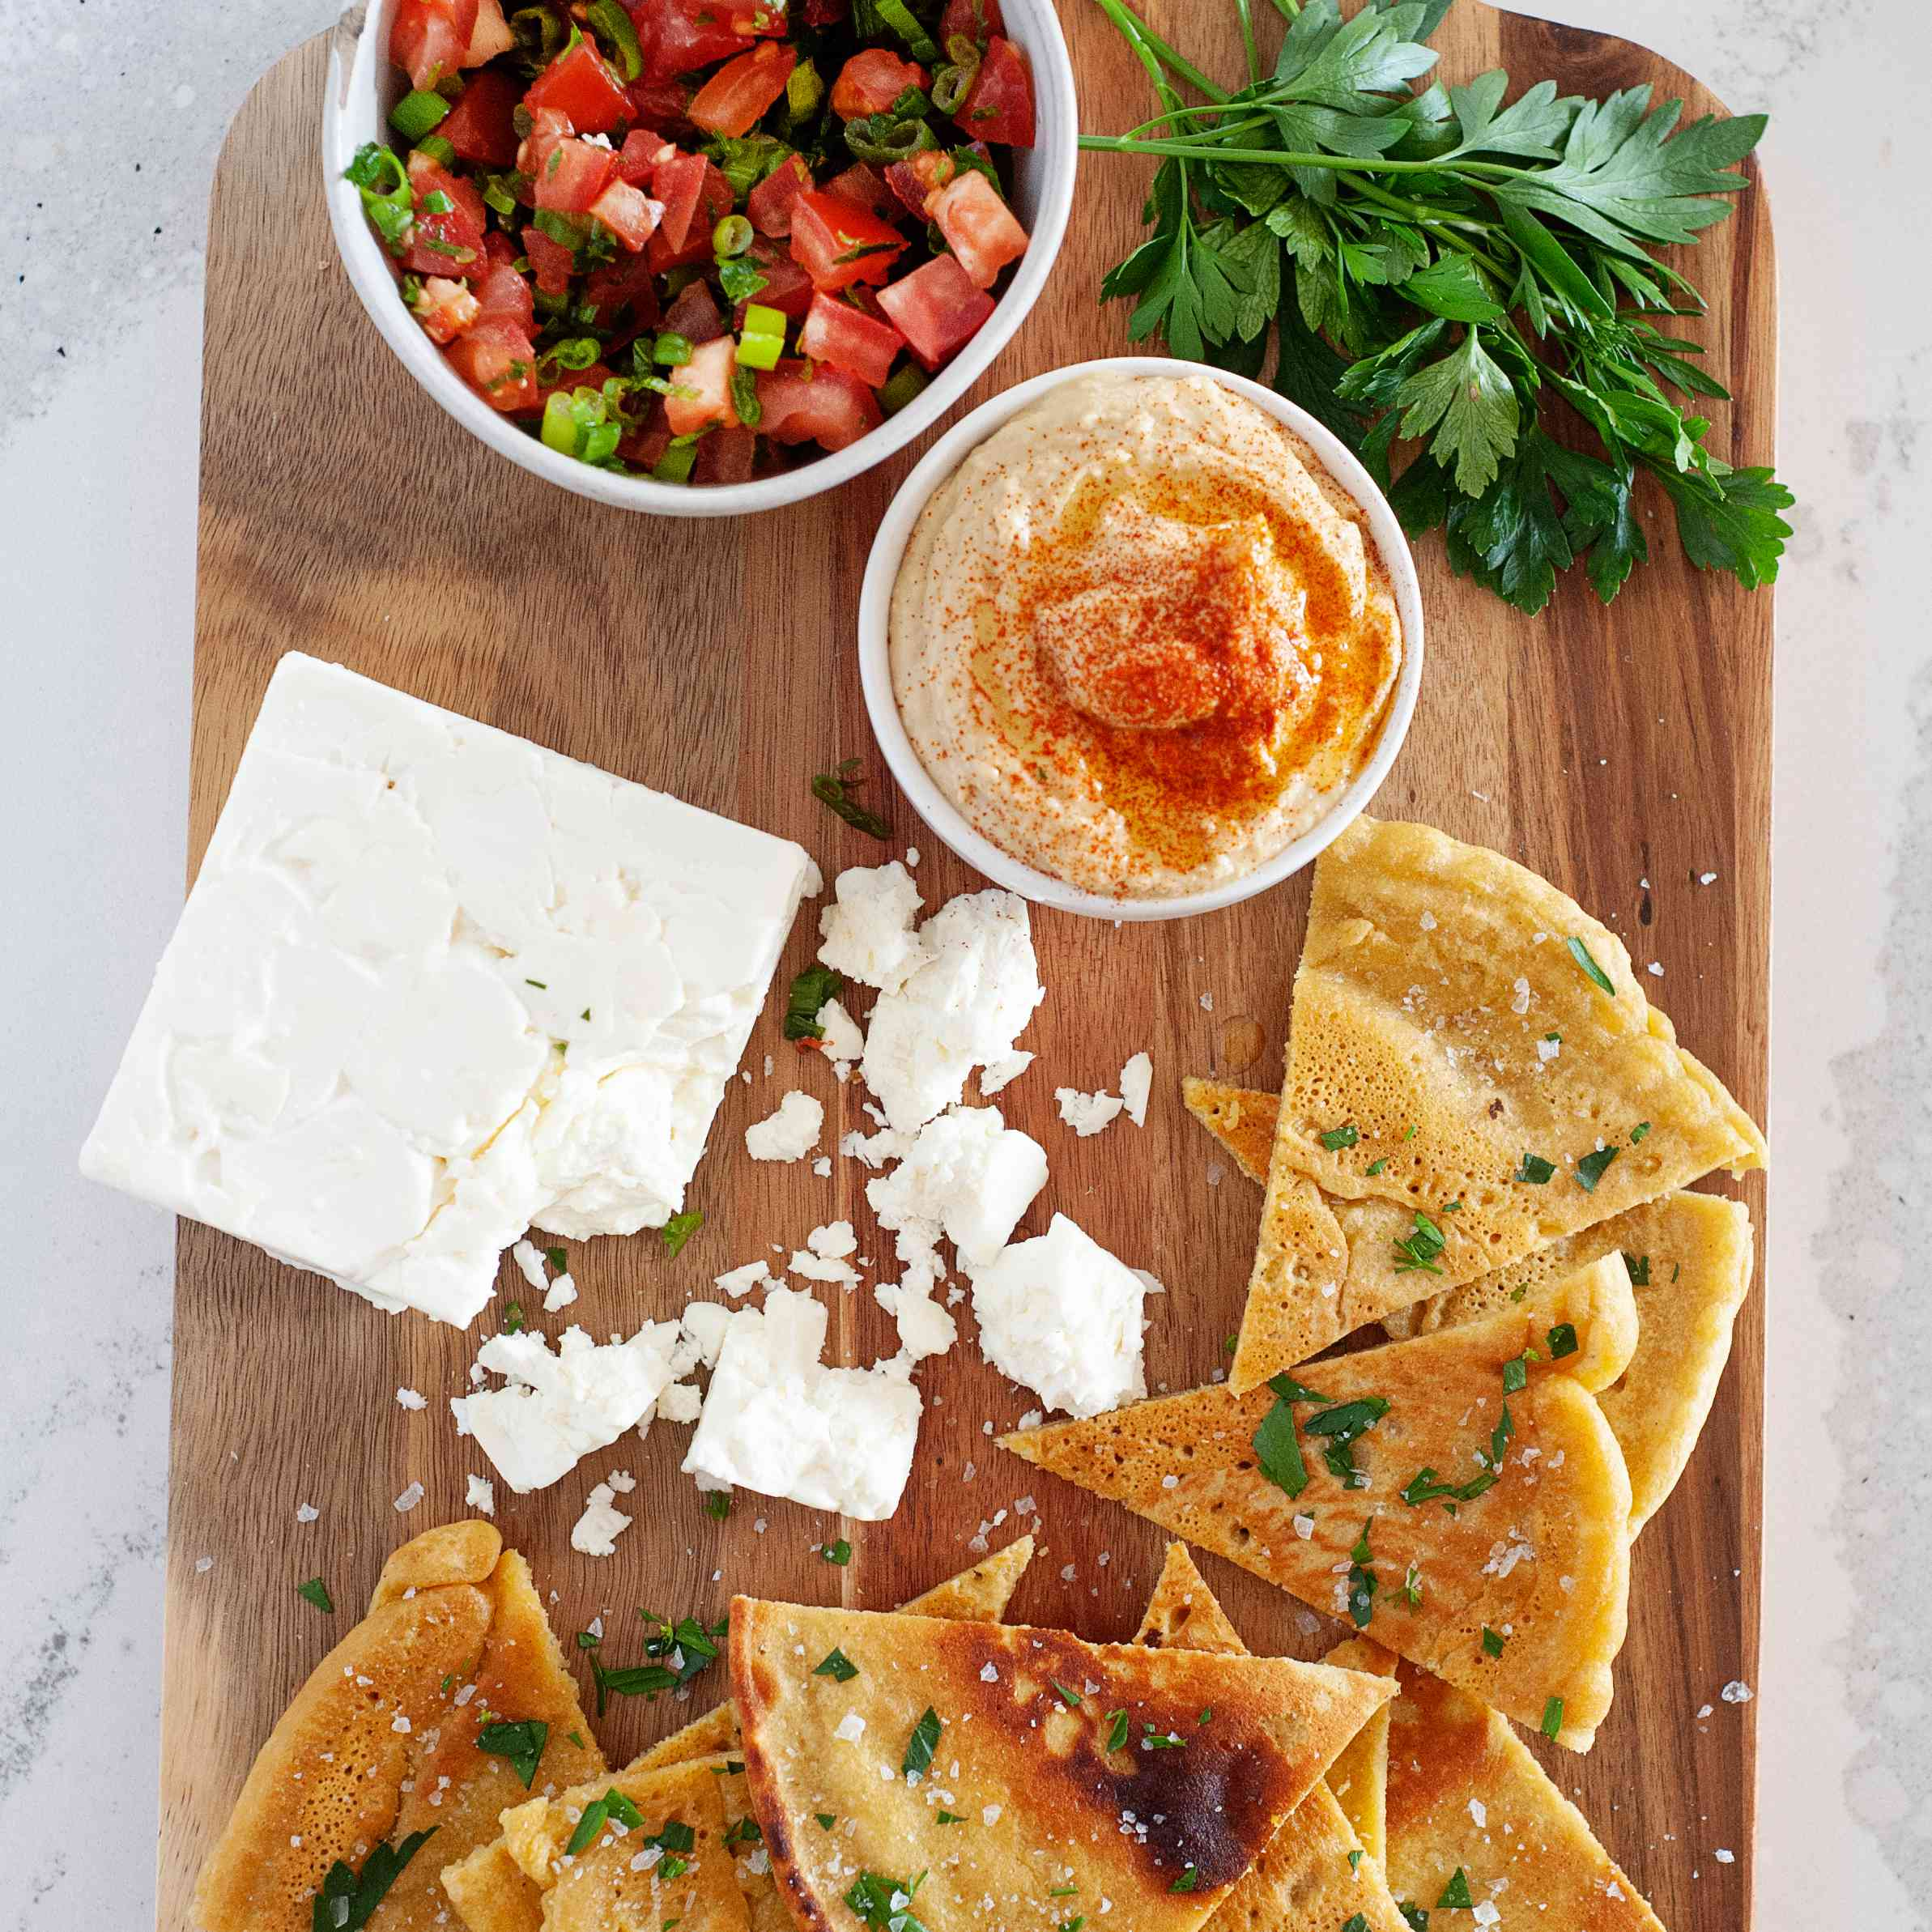 Socca—Gluten-Free Chickpea Flour Flatbread cut into triangles and served with a variety of sauces, vegetables, and cheese.